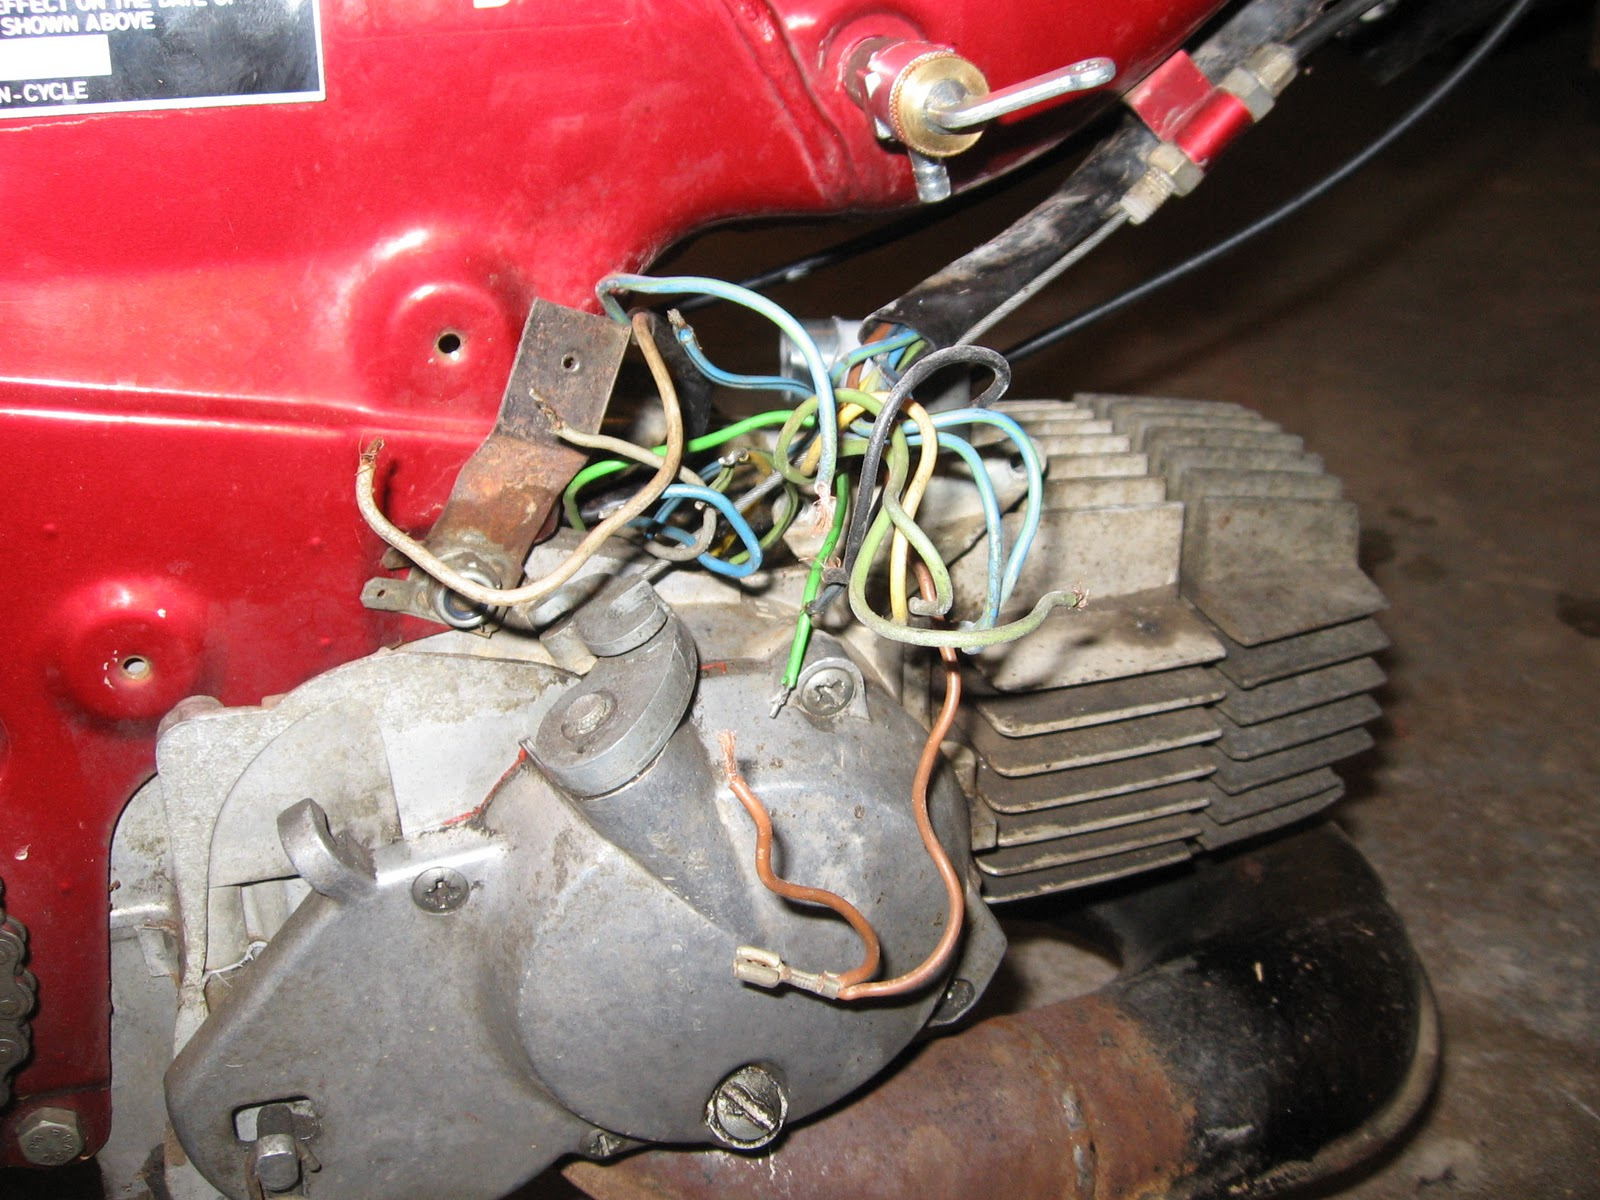 1980 Puch Maxi 1.5 HP Re-Build: Wiring